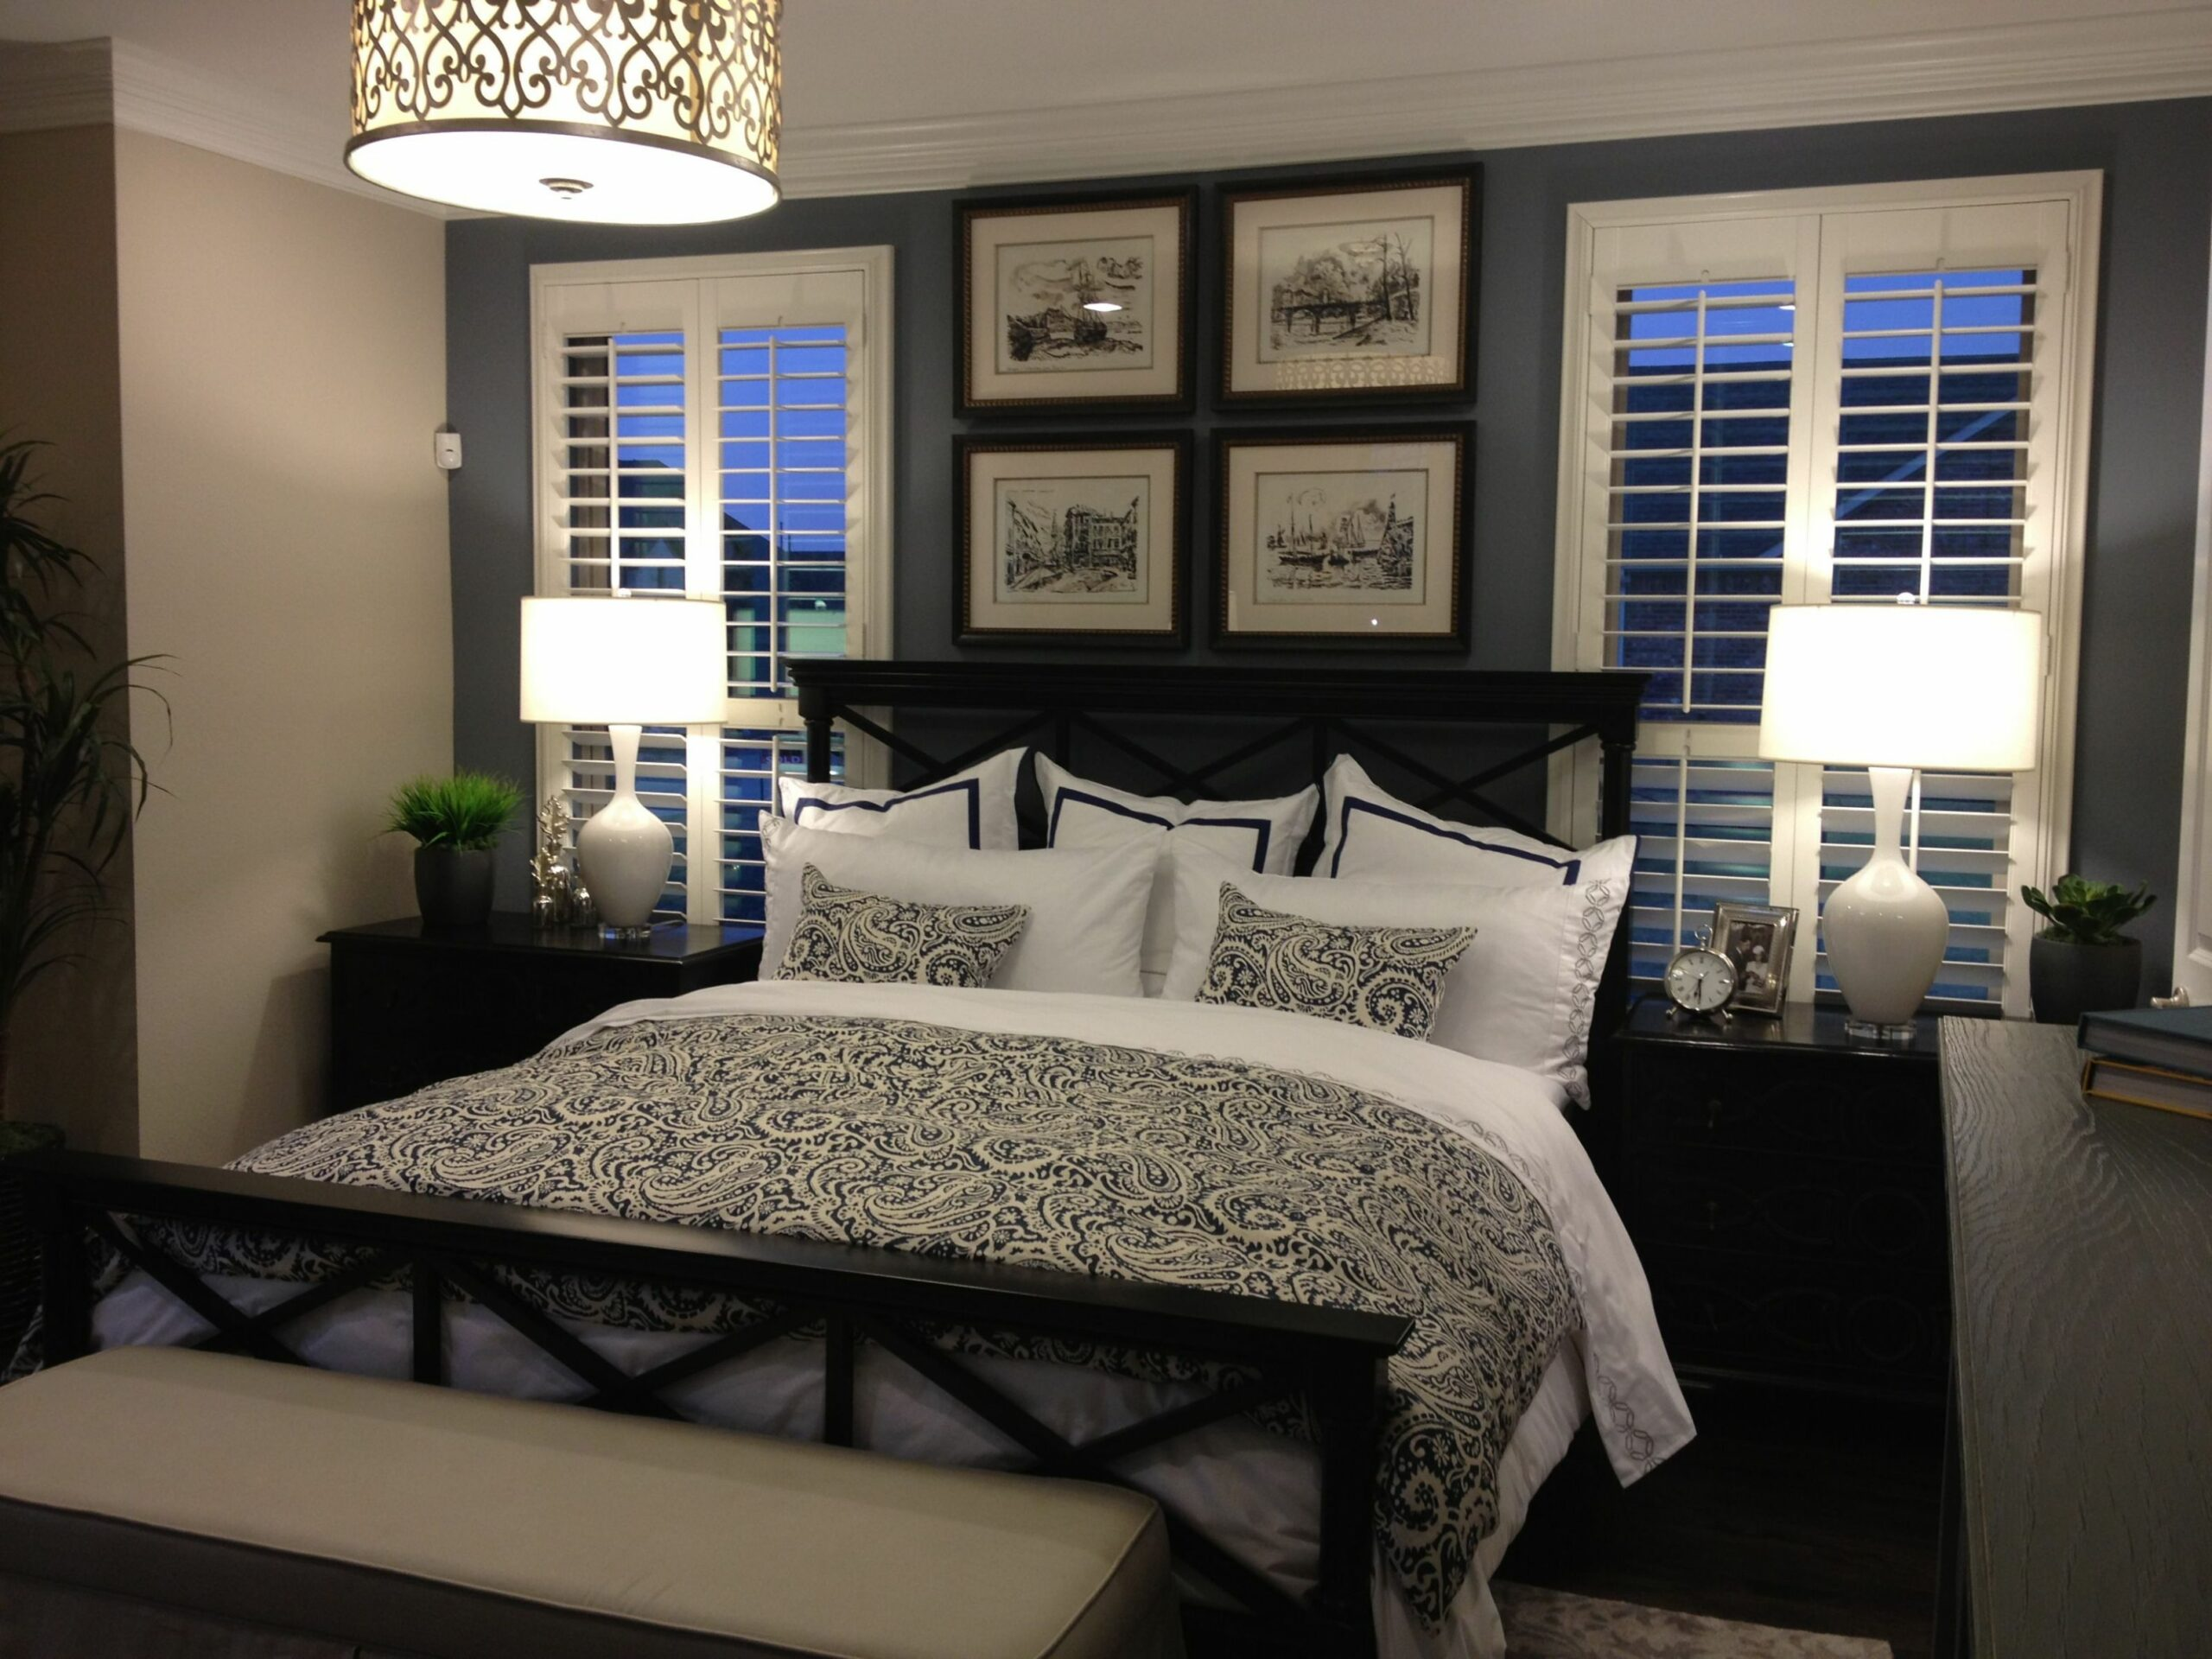 Master Bedroom Idea's | Small master bedroom, Black master bedroom ...